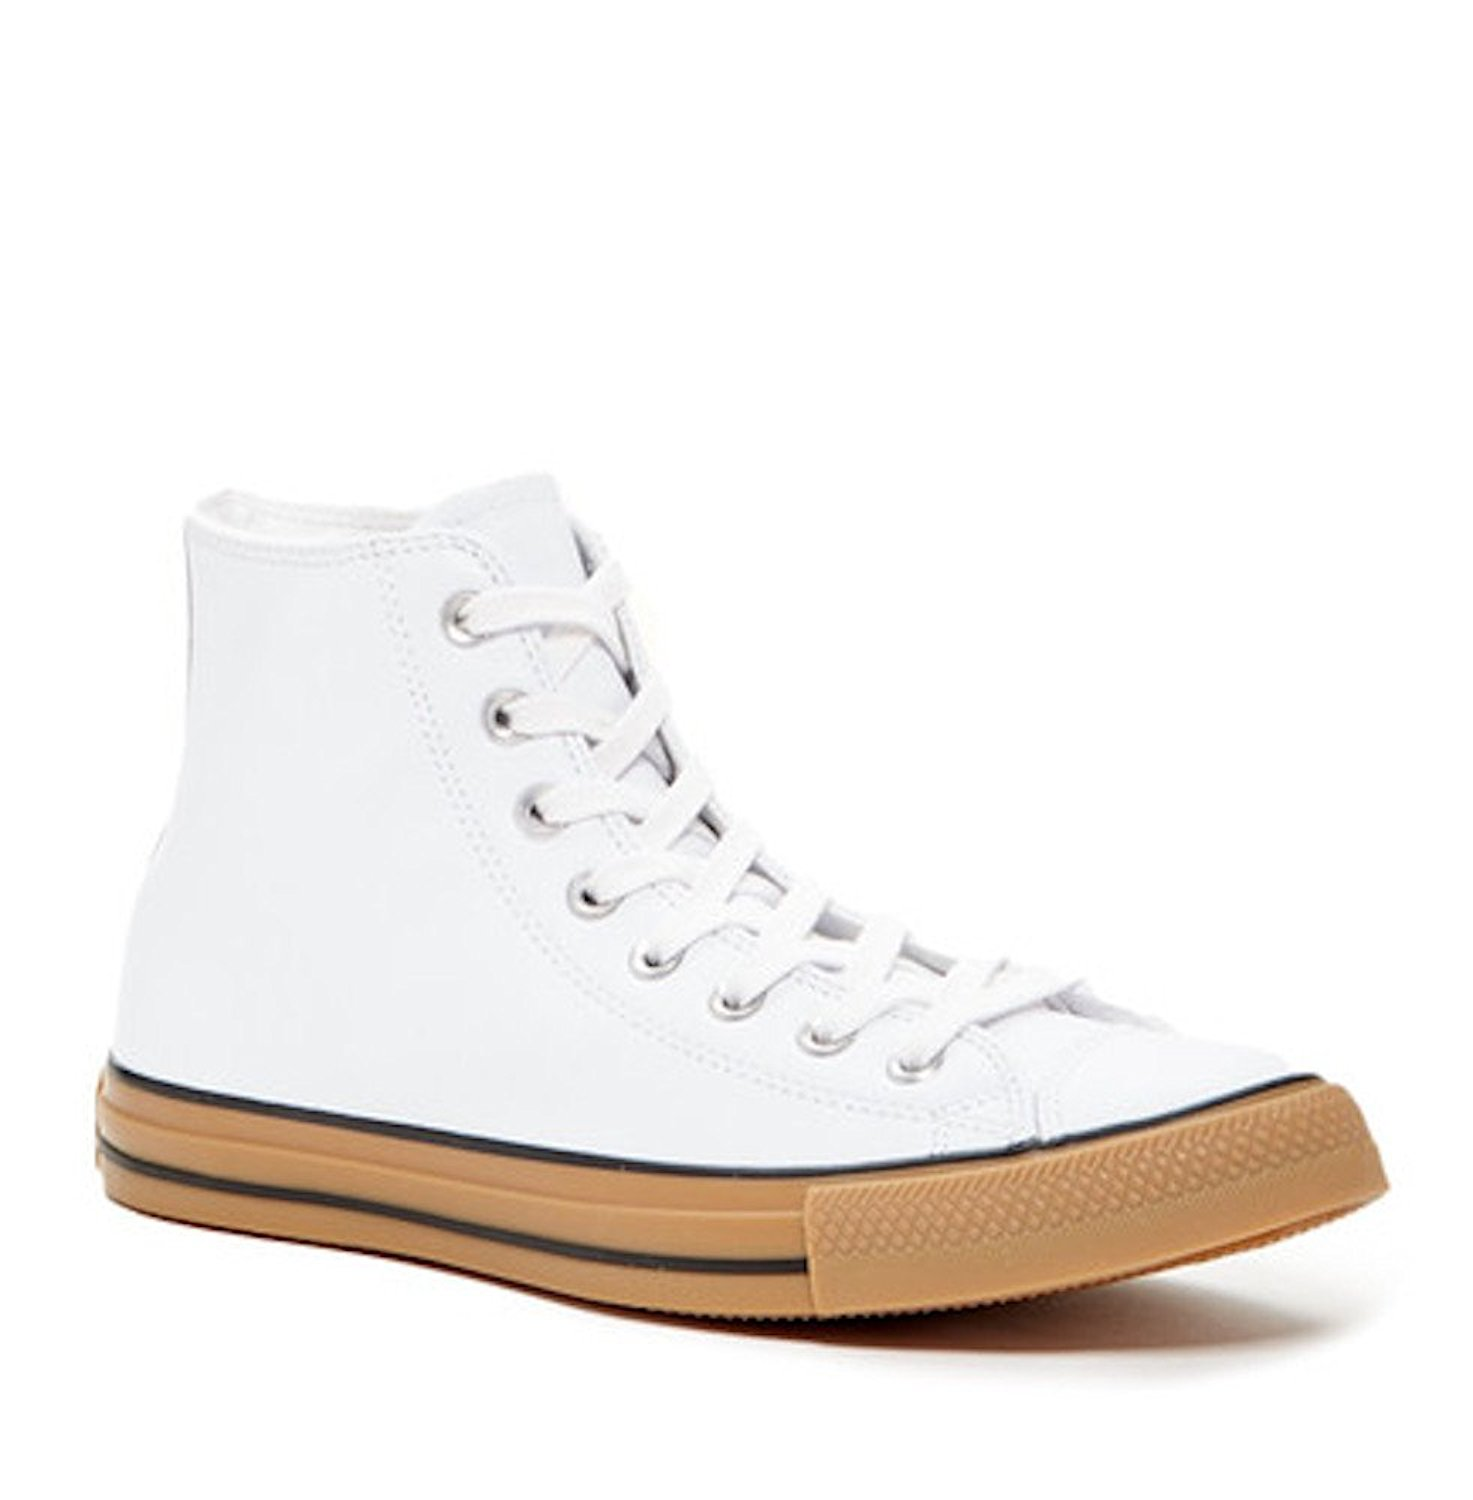 6796b39fed3ed4 Get Quotations · Converse Chuck Taylor All Star Hi White Leather Size 12  Men s Women s 14 ...